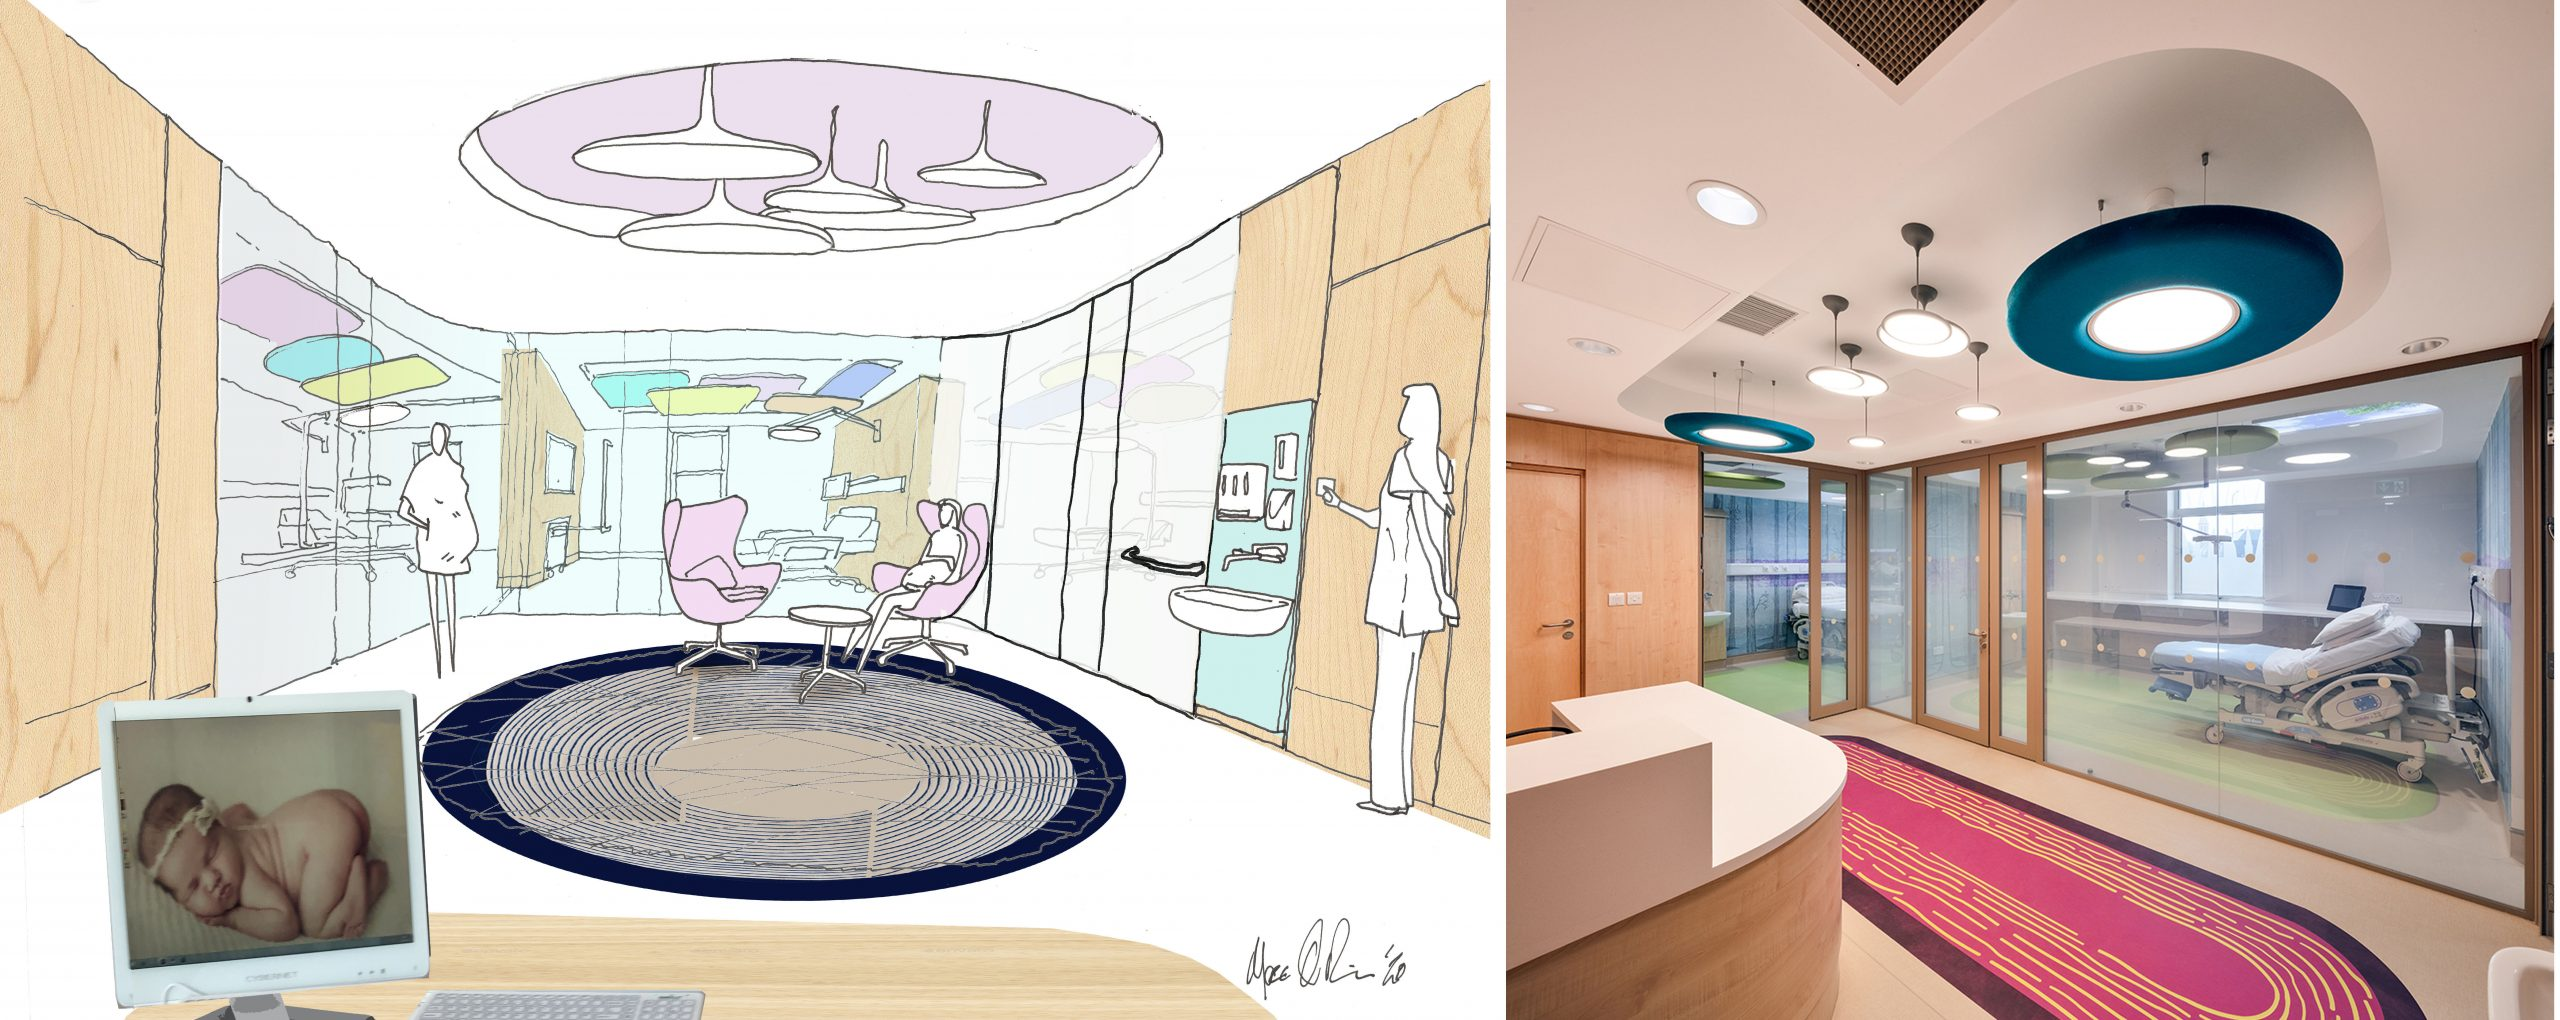 detailed sketch of partition privacy smart glass in hospital setting